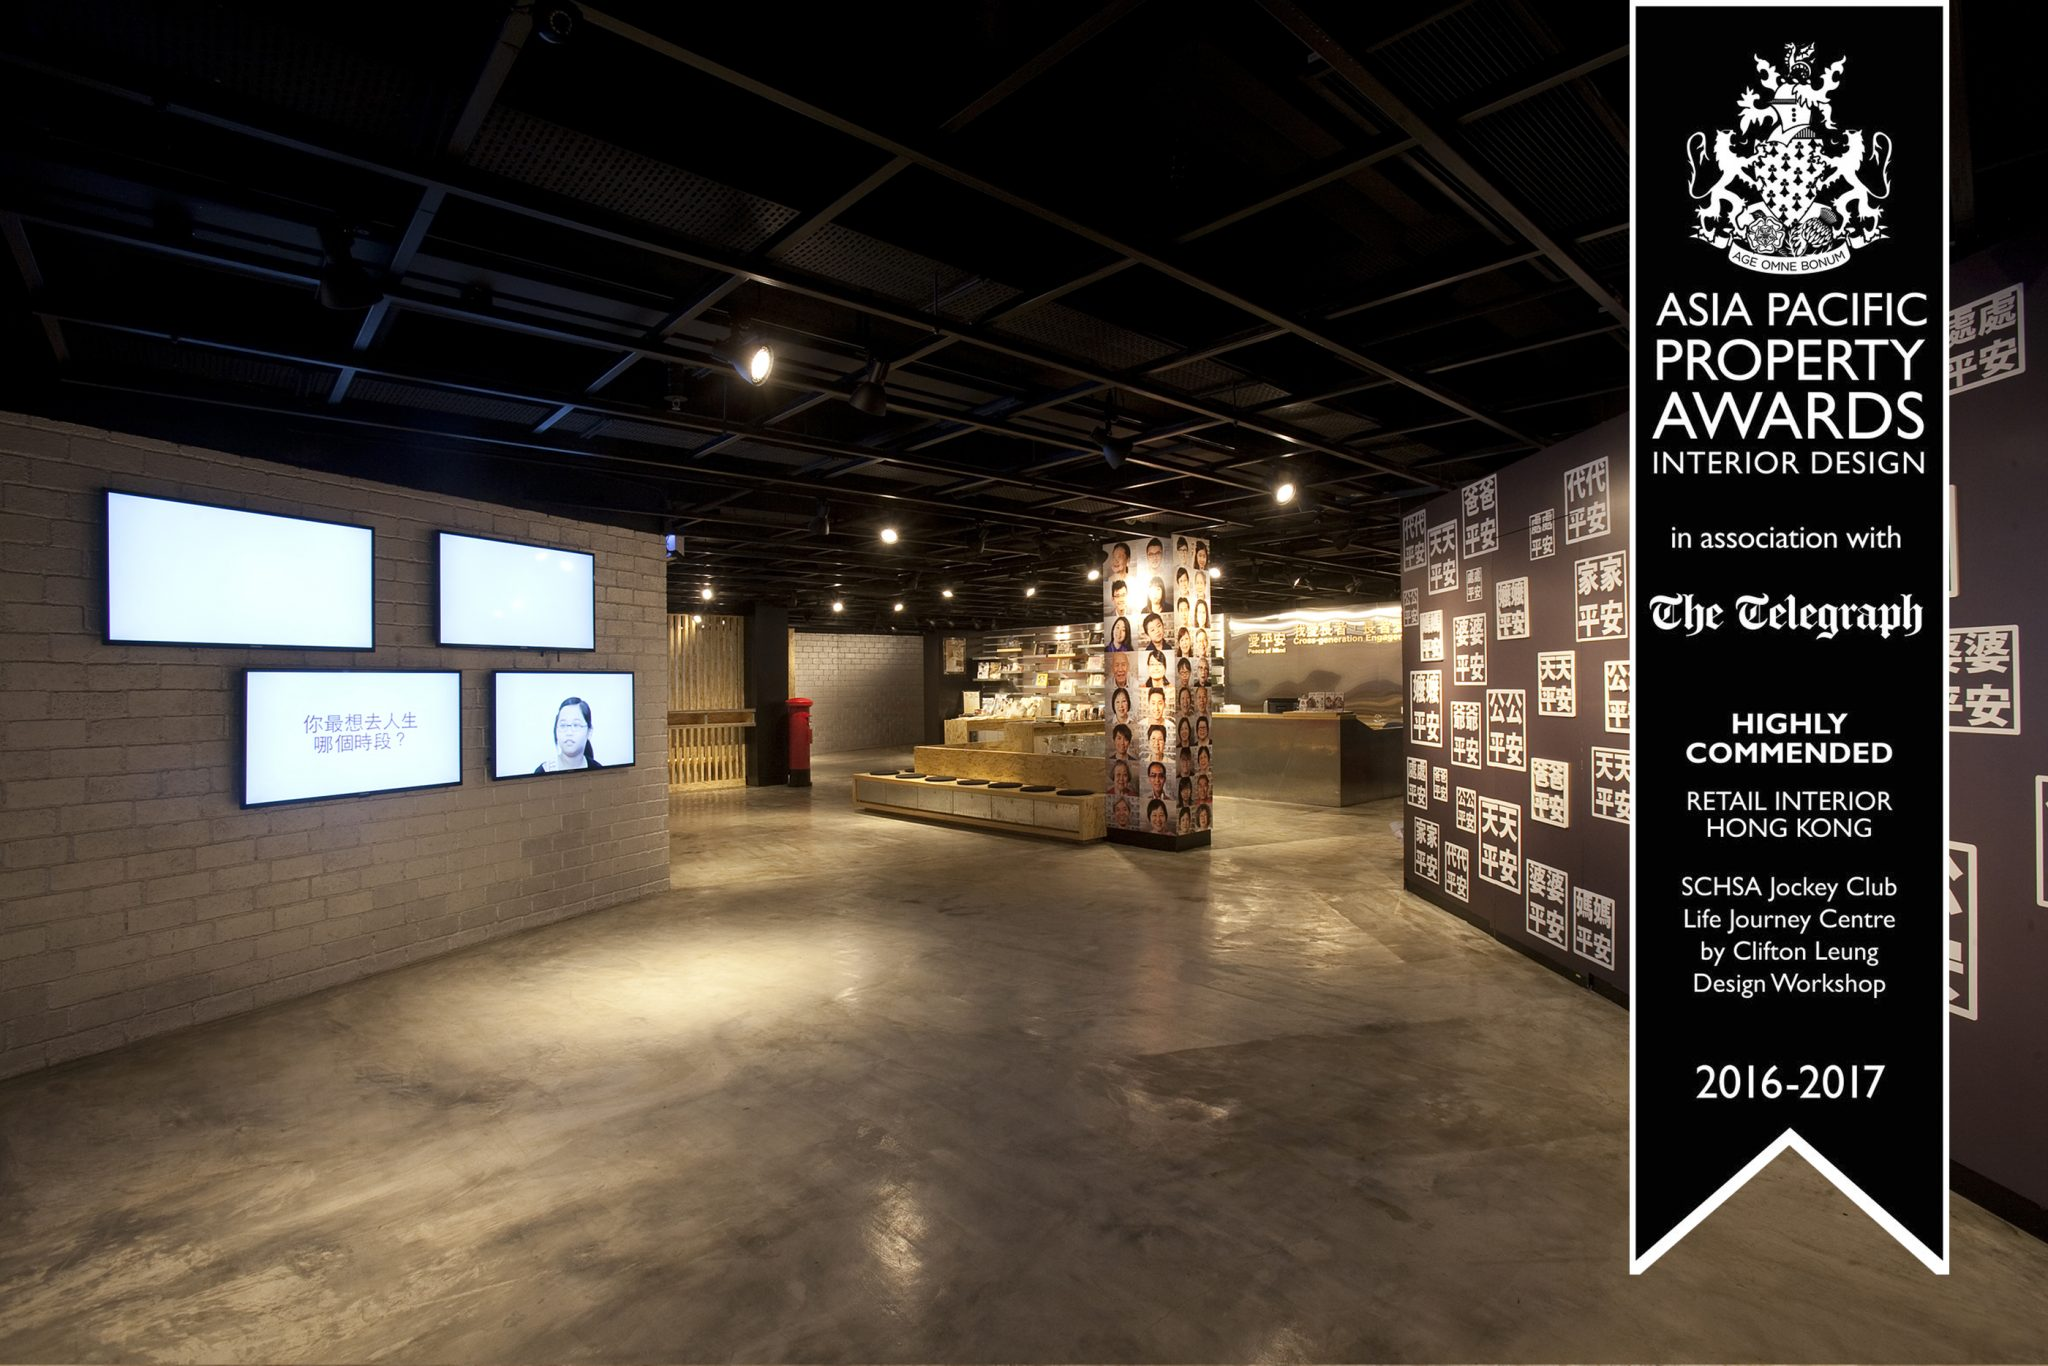 SCHSA Jockey Club Life Journal Centre – Highly Commended, Retail Interior Hong Kong, Asia Pacific Property Awards 2016/17